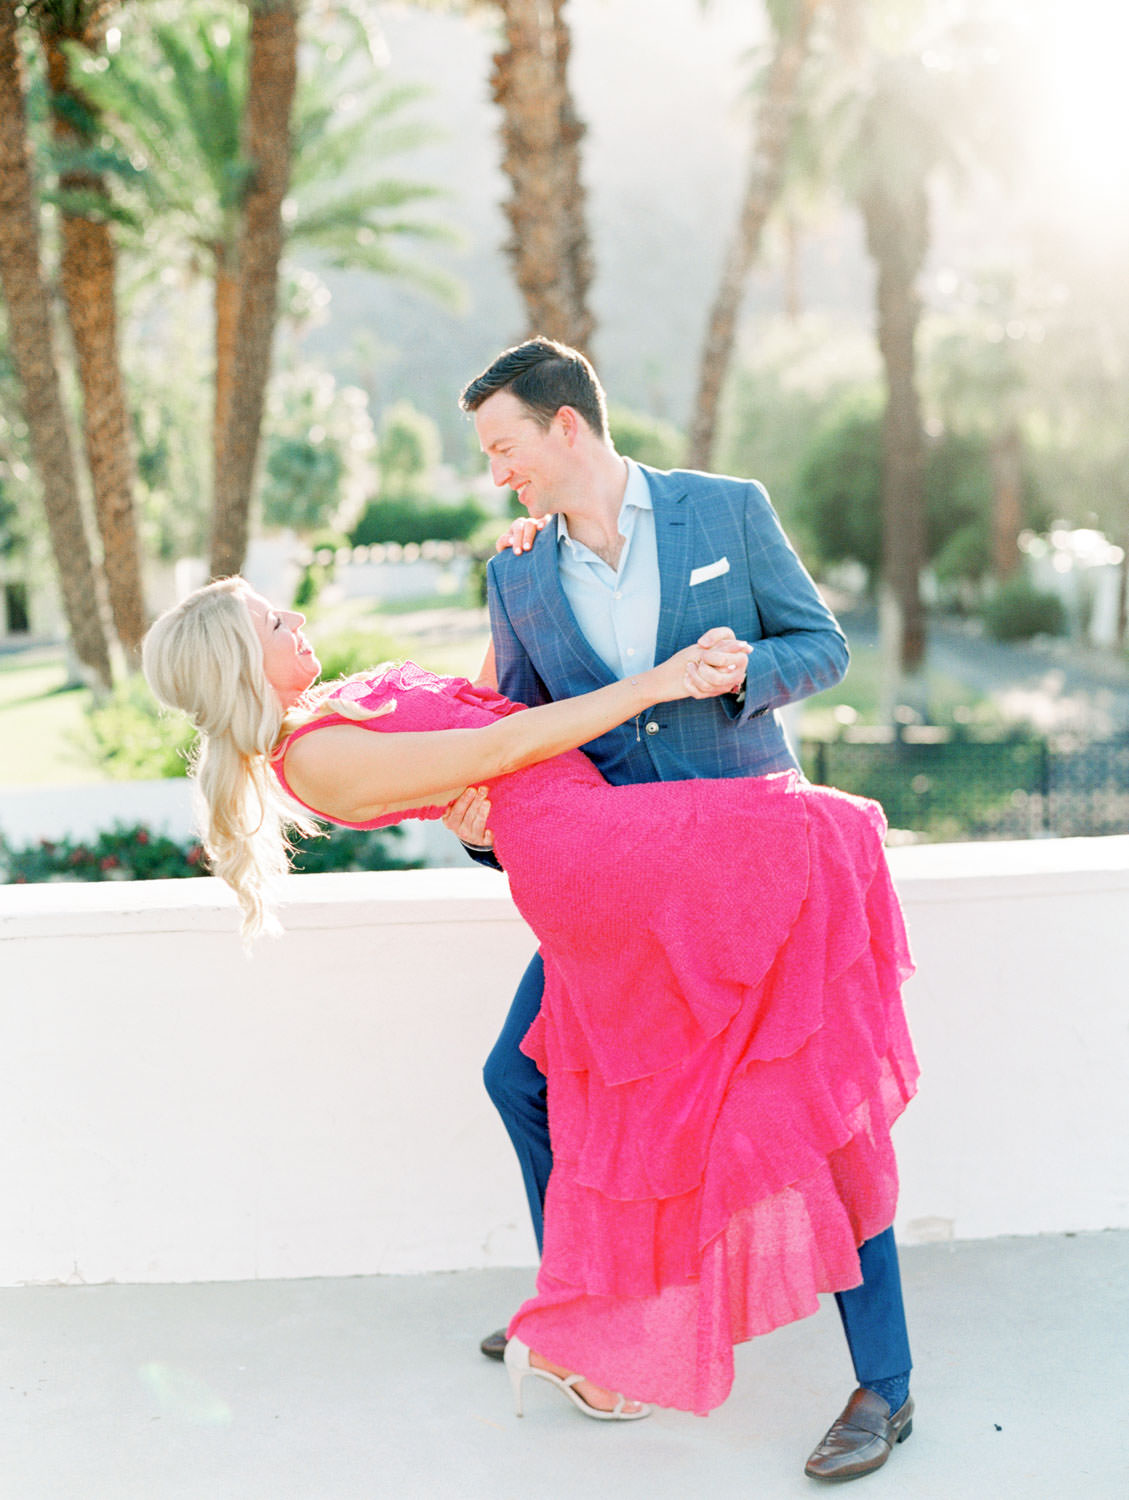 Bride in long pink ruffle dress and groom in blue suit dancing on a rooftop. La Quinta Resort Engagement Photos on Film by Cavin Elizabeth Photography